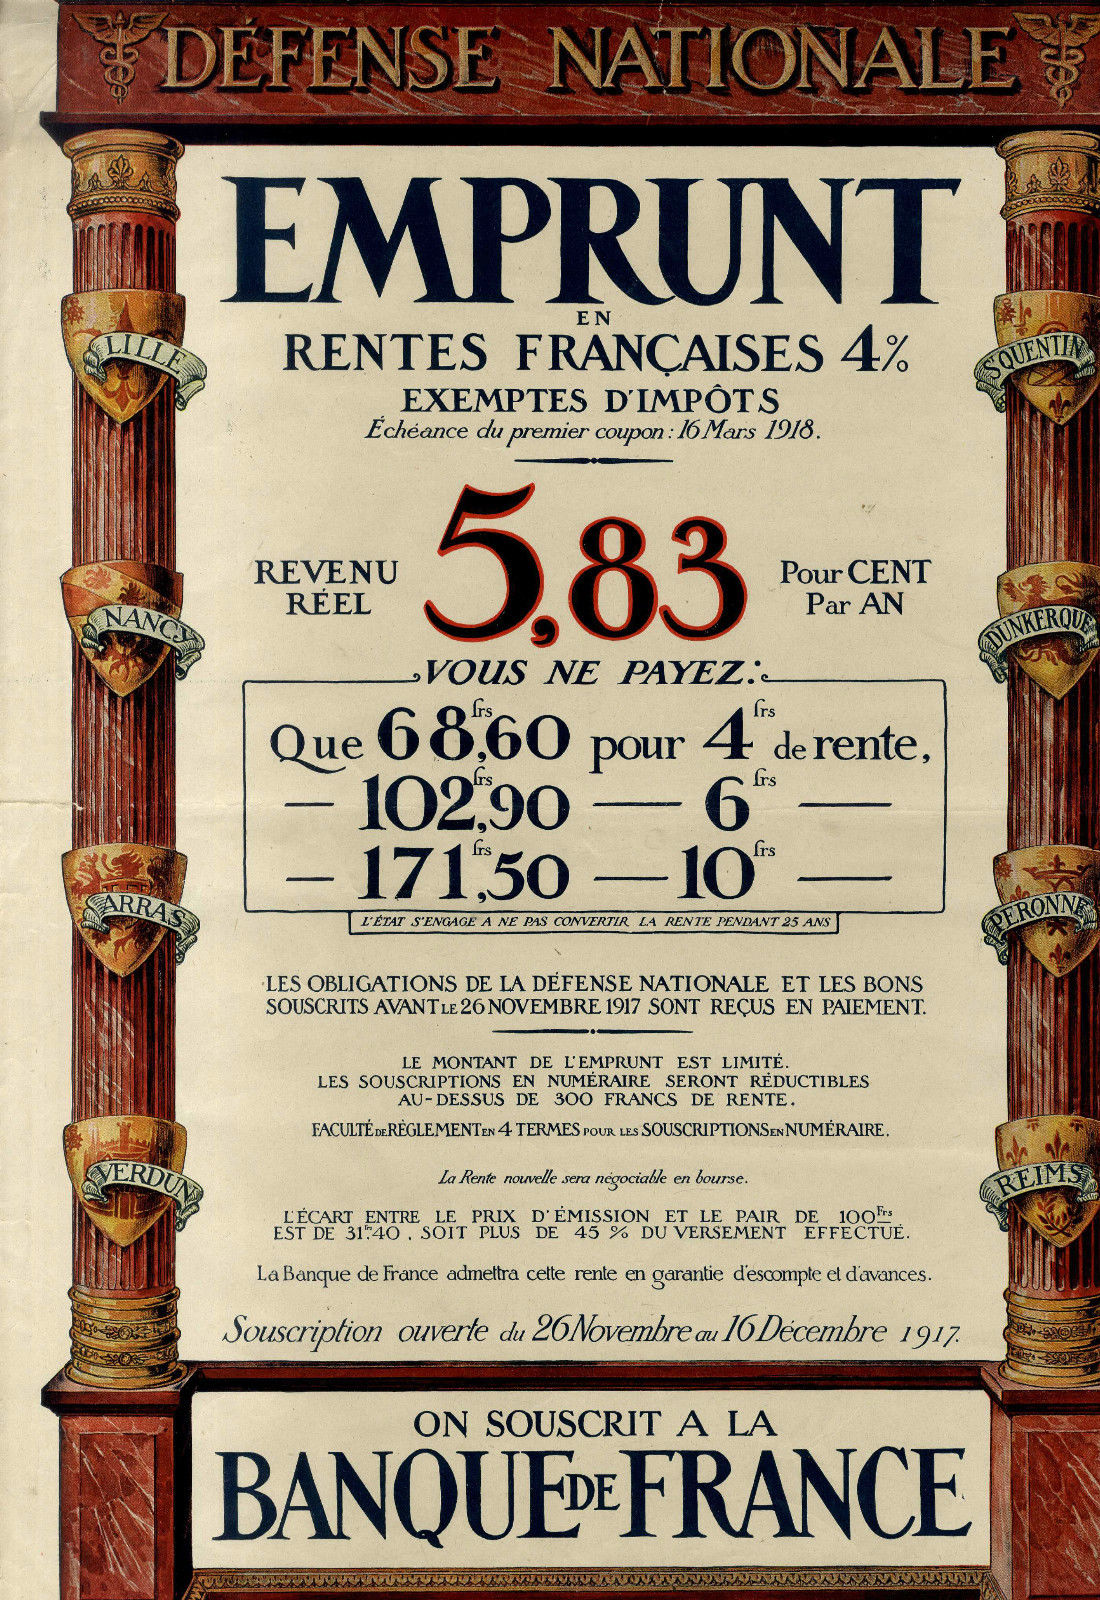 Affiche-Ancienne-Emprunt-National-Banque-De-France.jpg